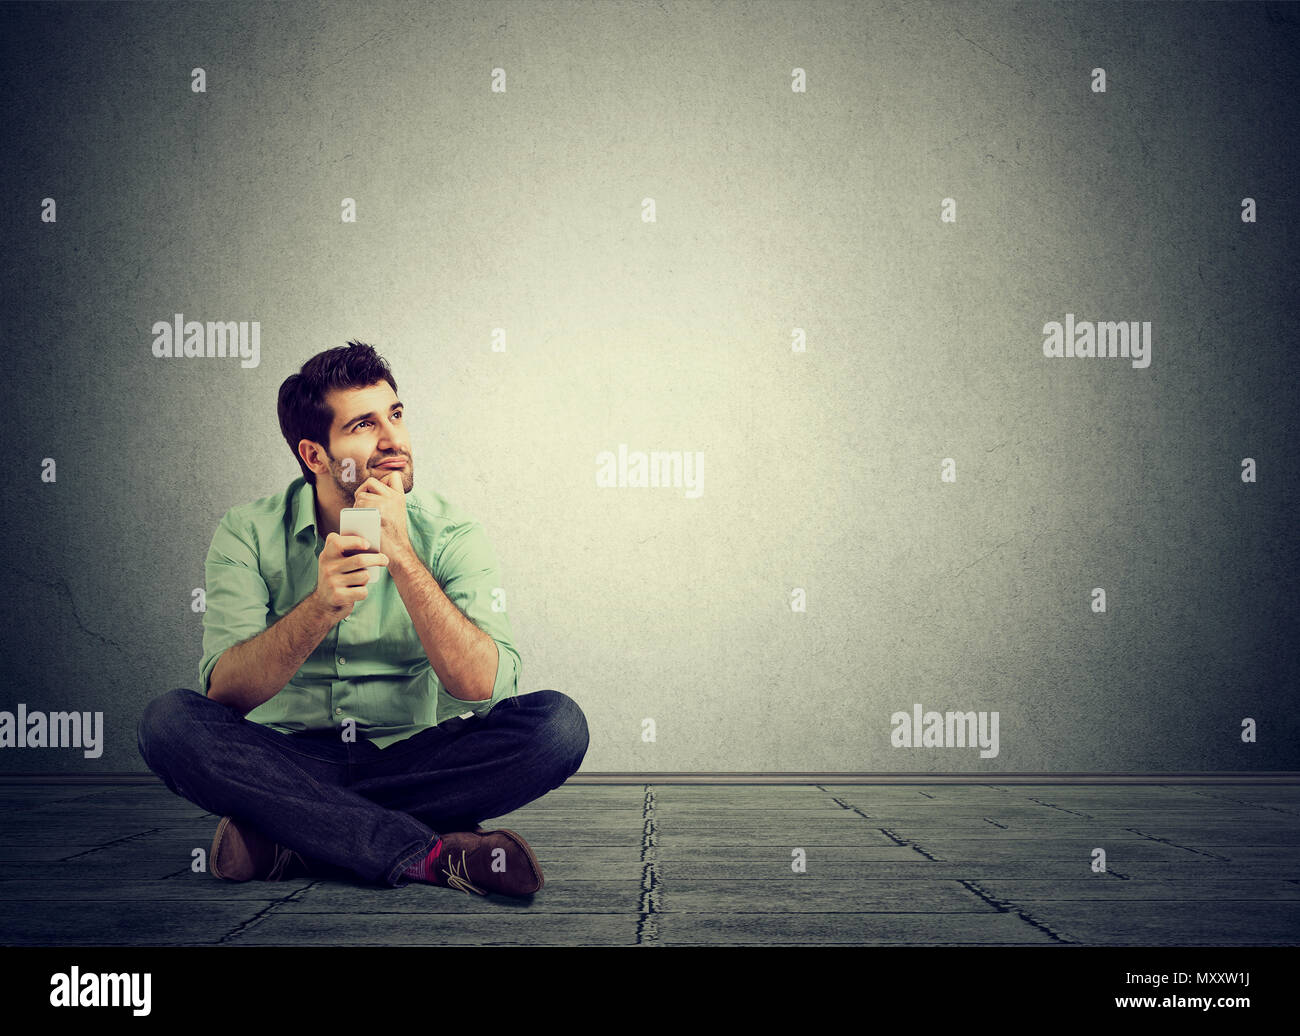 Handsome casual man sitting on floor with smartphone in hands and looking away in contemplation - Stock Image